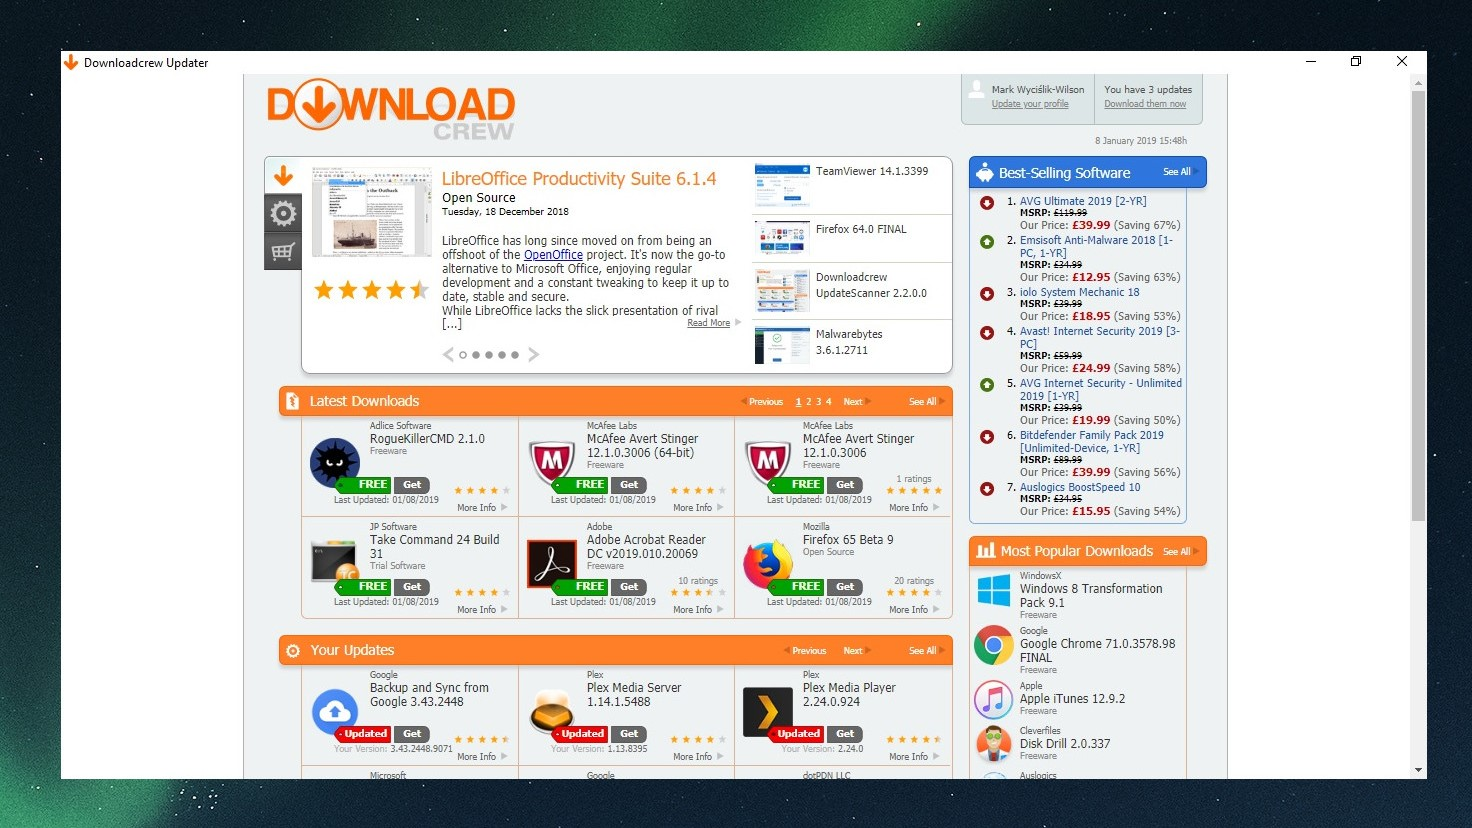 The best free software updater 2019 1547210290_233_the-best-free-software-updater-2019